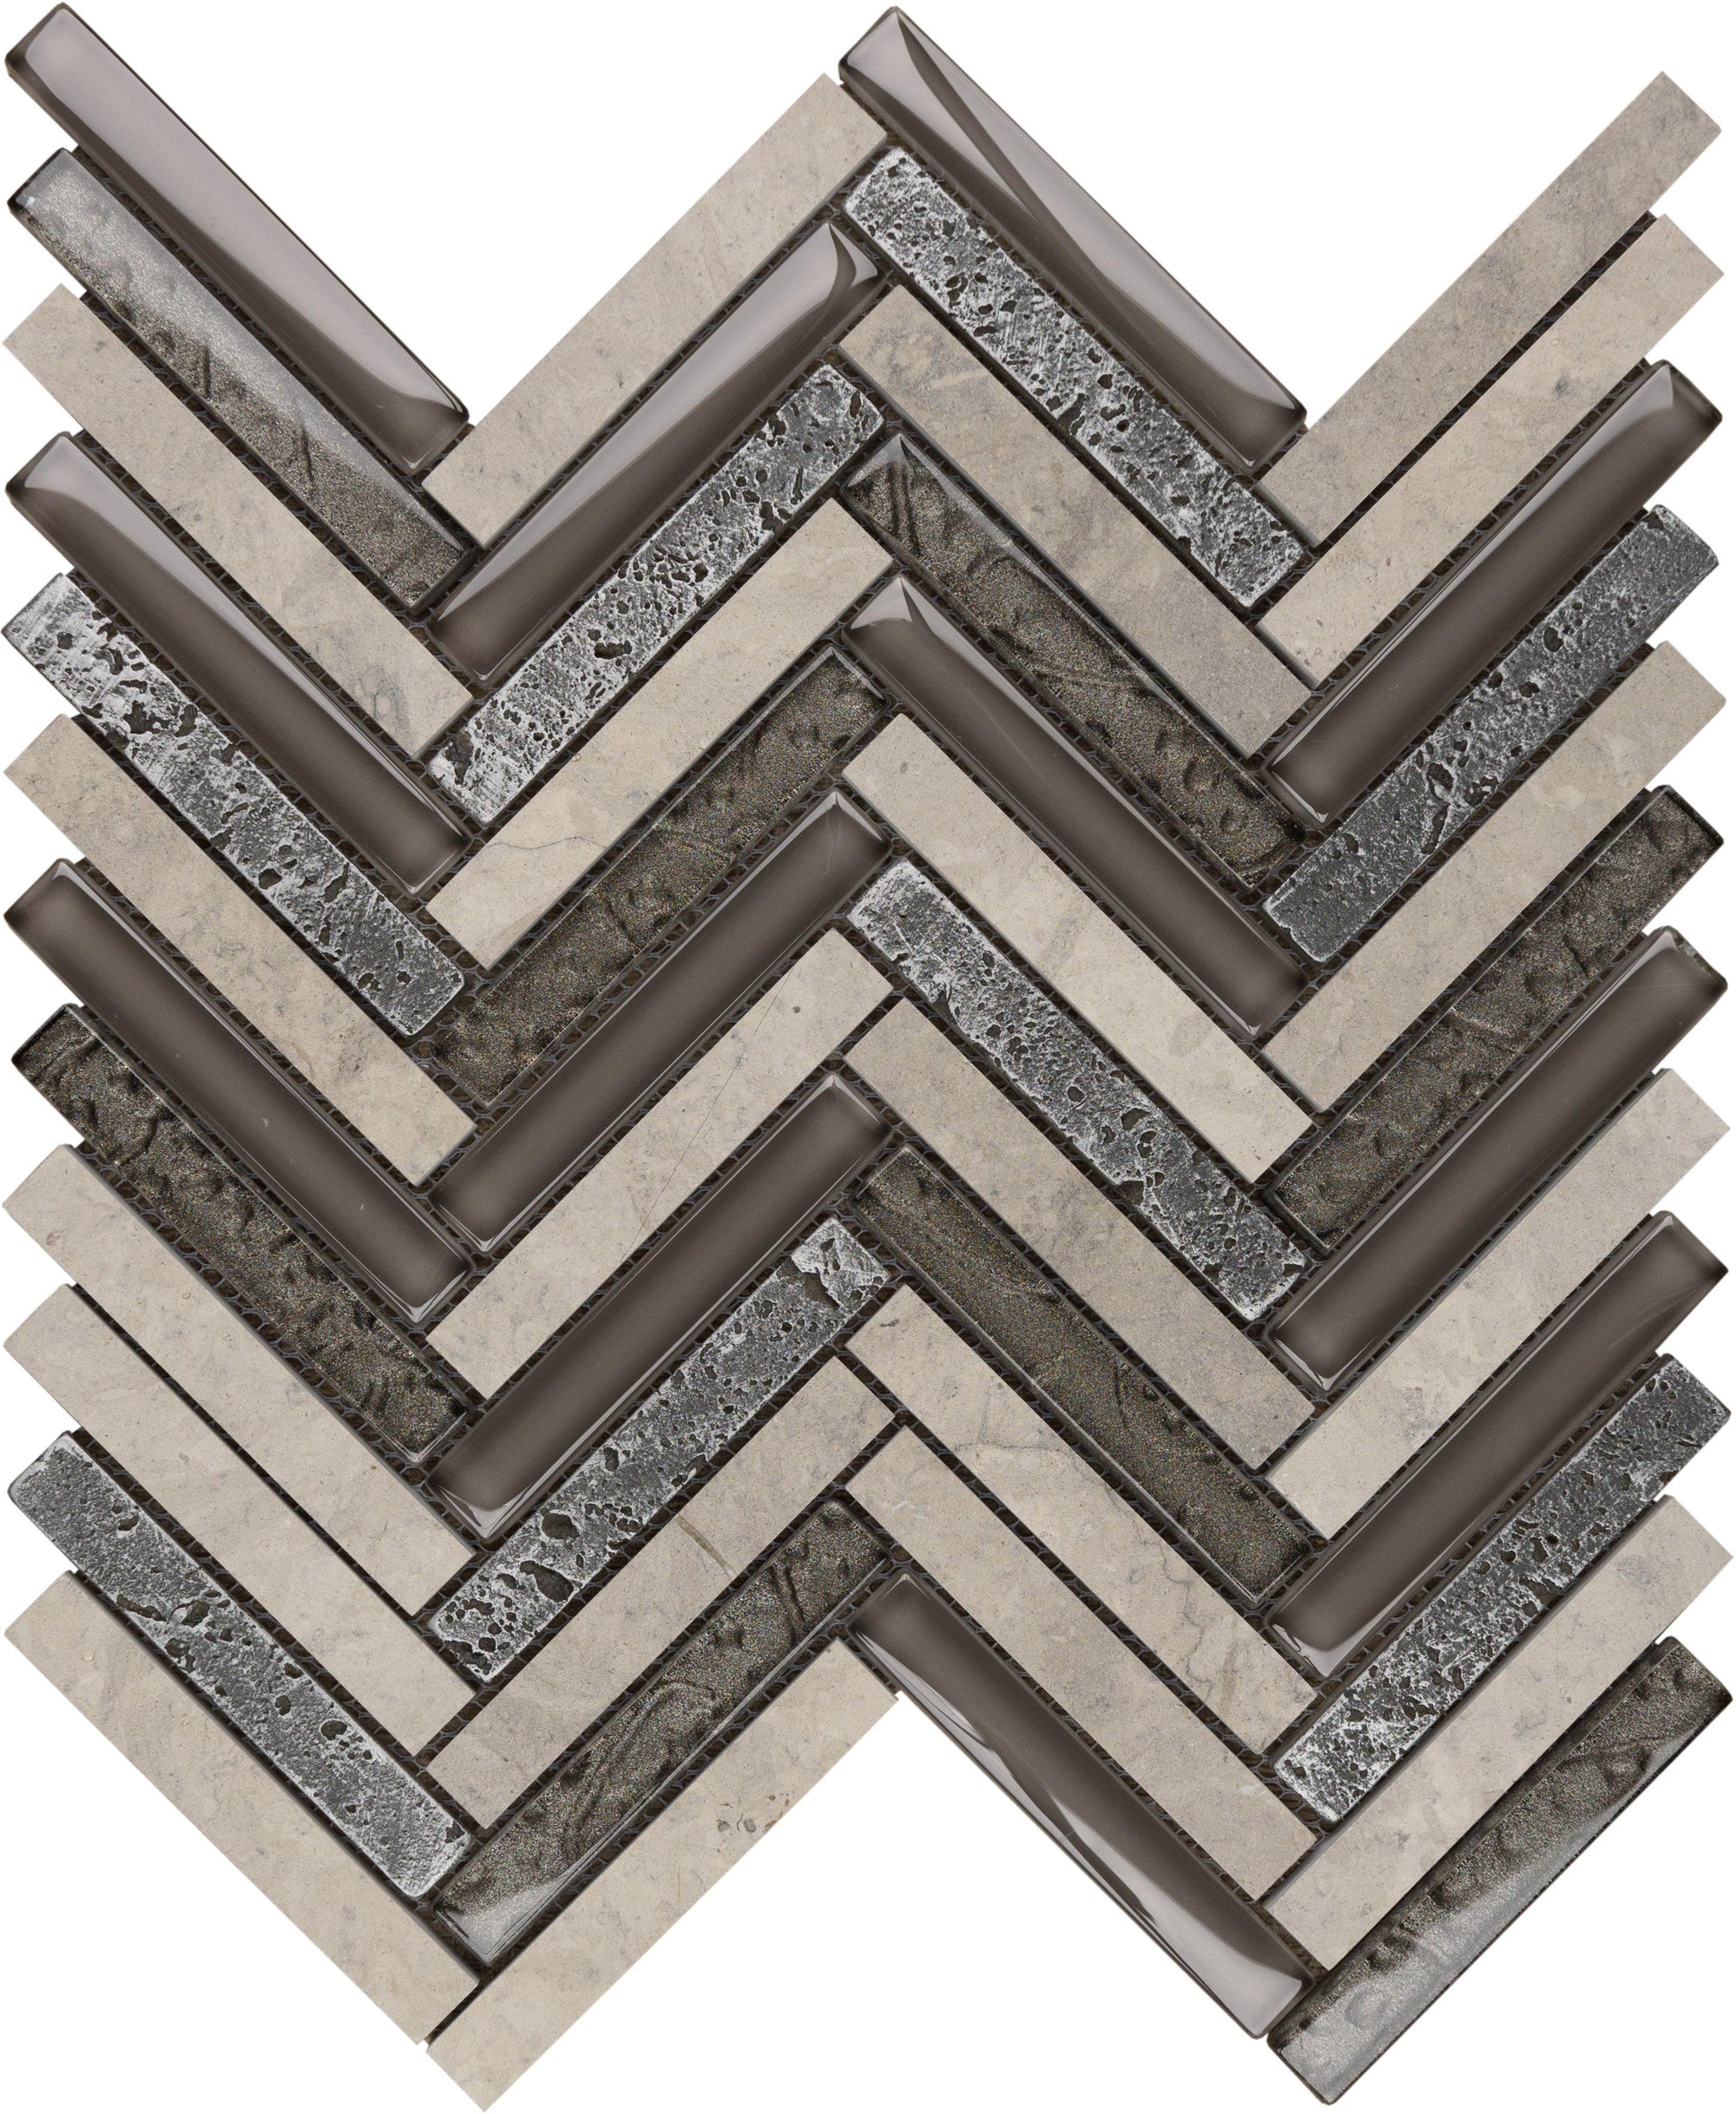 "Blackburn 5/8"" x 4"" Herringbone Mosaic"